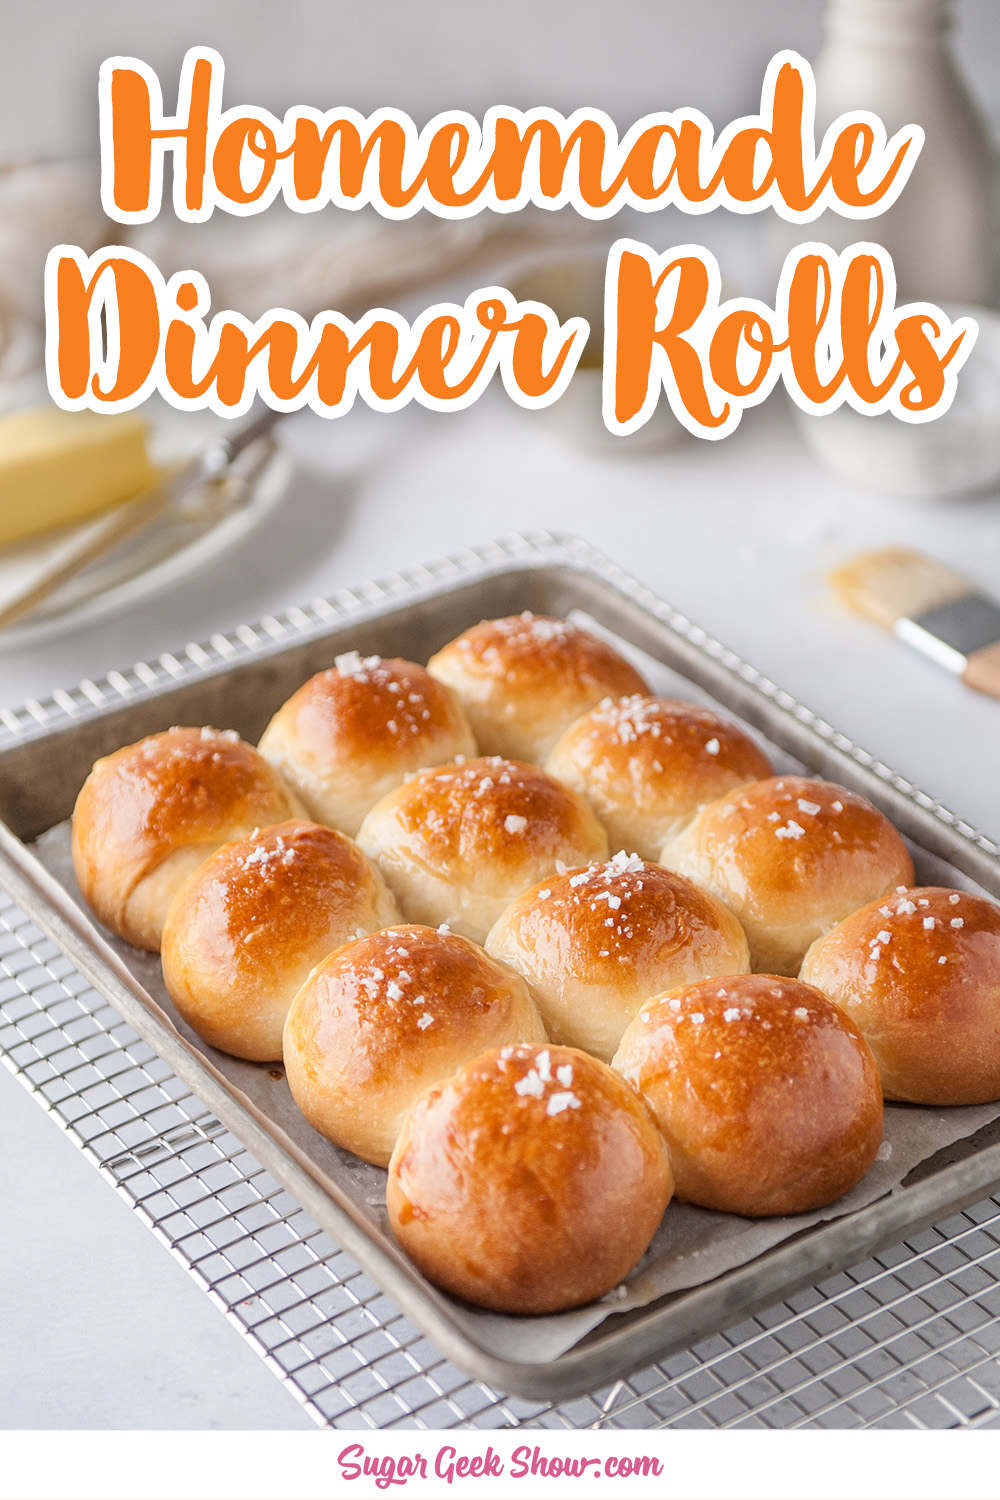 Homemade Dinner Rolls With Seasalt And Butter Sugar Geek Show Recipe In 2020 Homemade Dinner Rolls Dinner Rolls Homemade Dinner